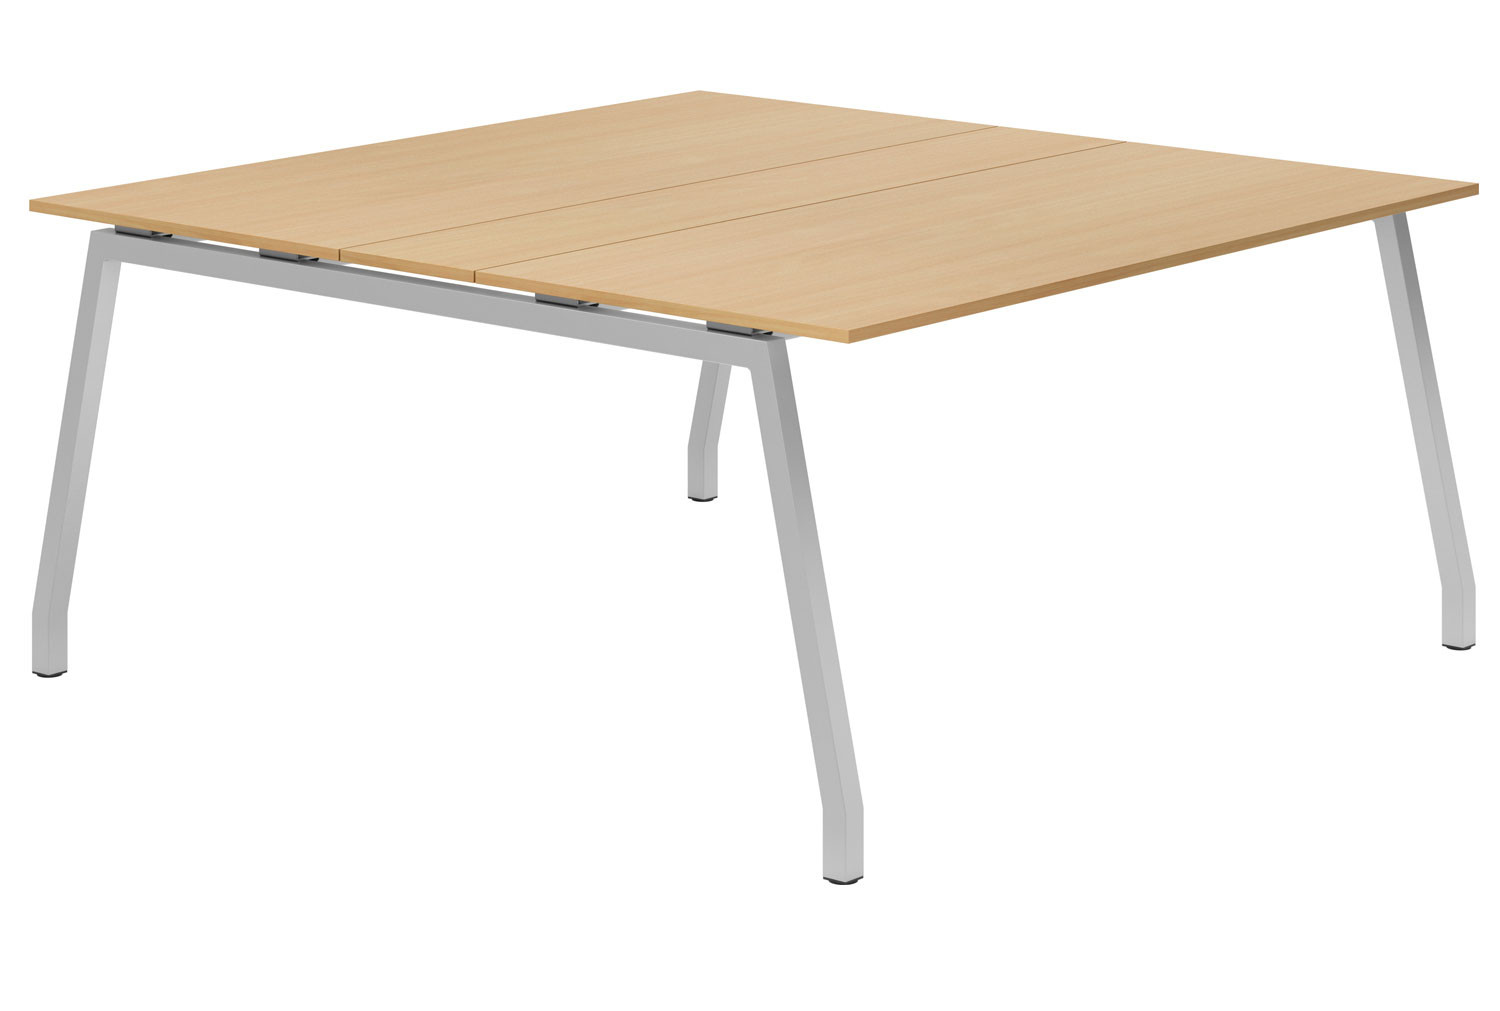 Lozano A-Frame 6-8 Person Meeting Table (Beech)